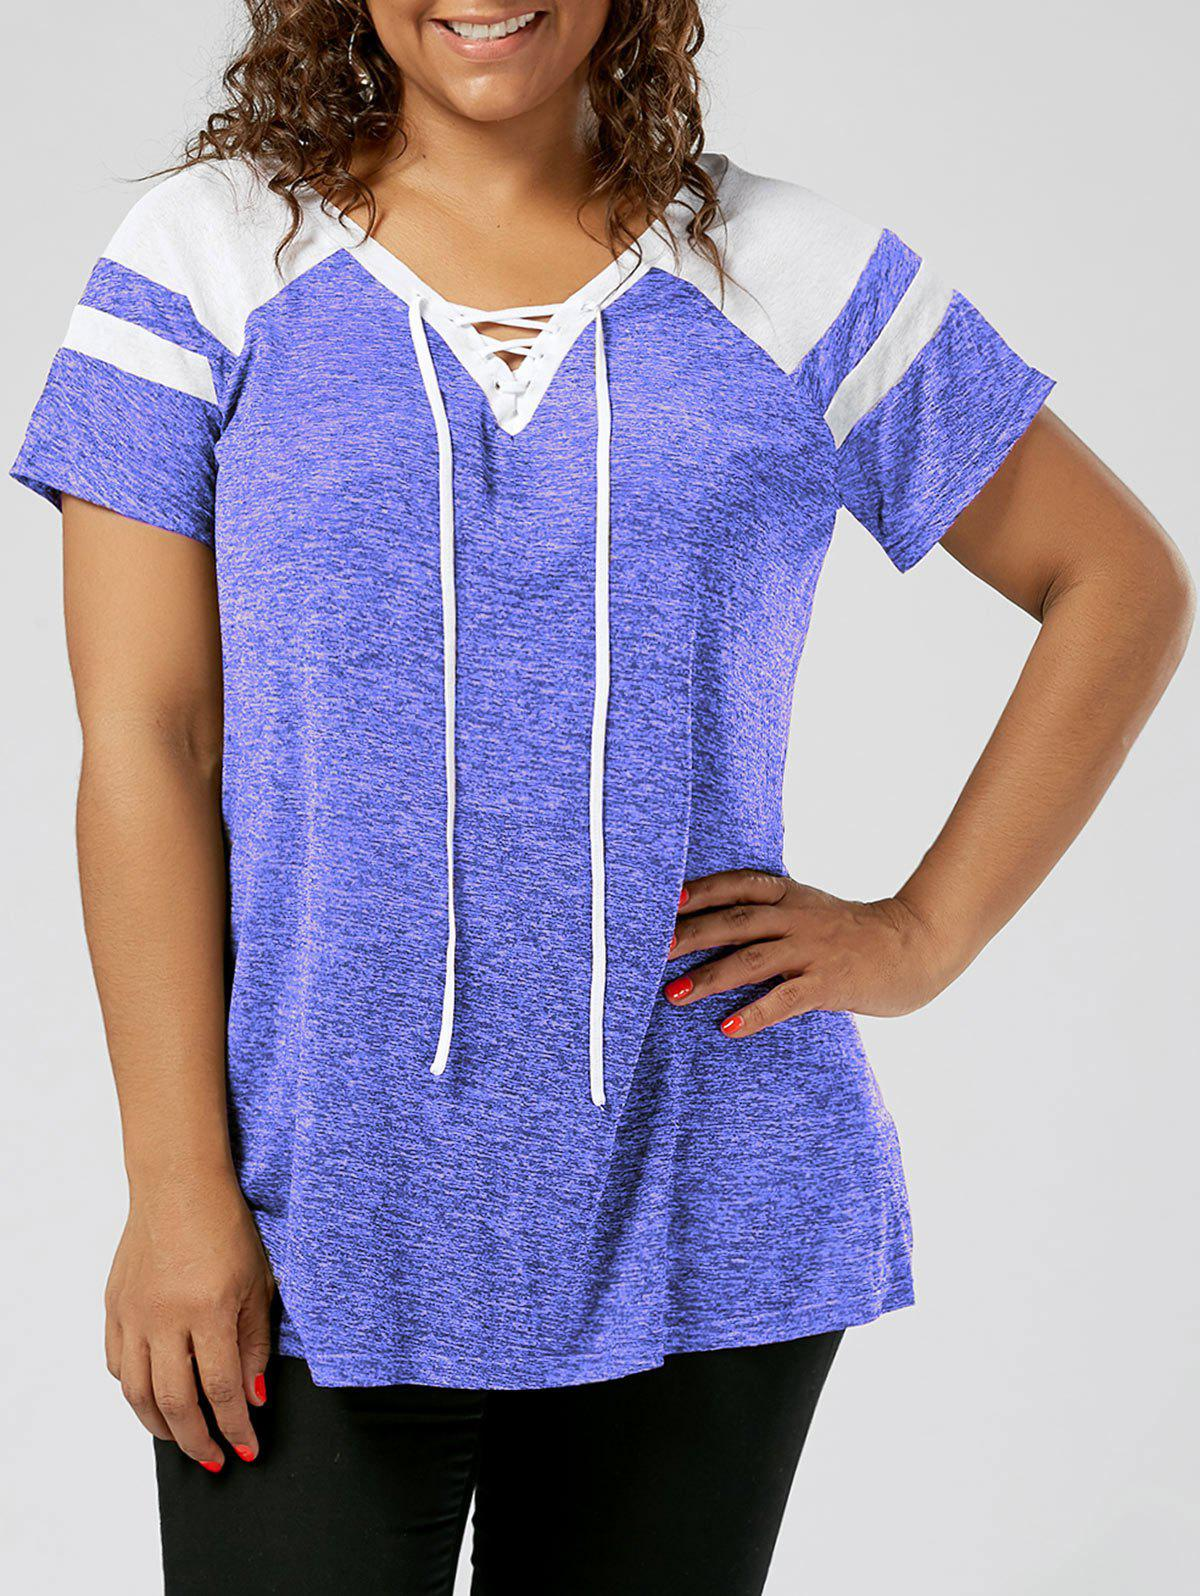 51% OFF   2019 Plus Size Lace Up Raglan Sleeve Top  ab6340721